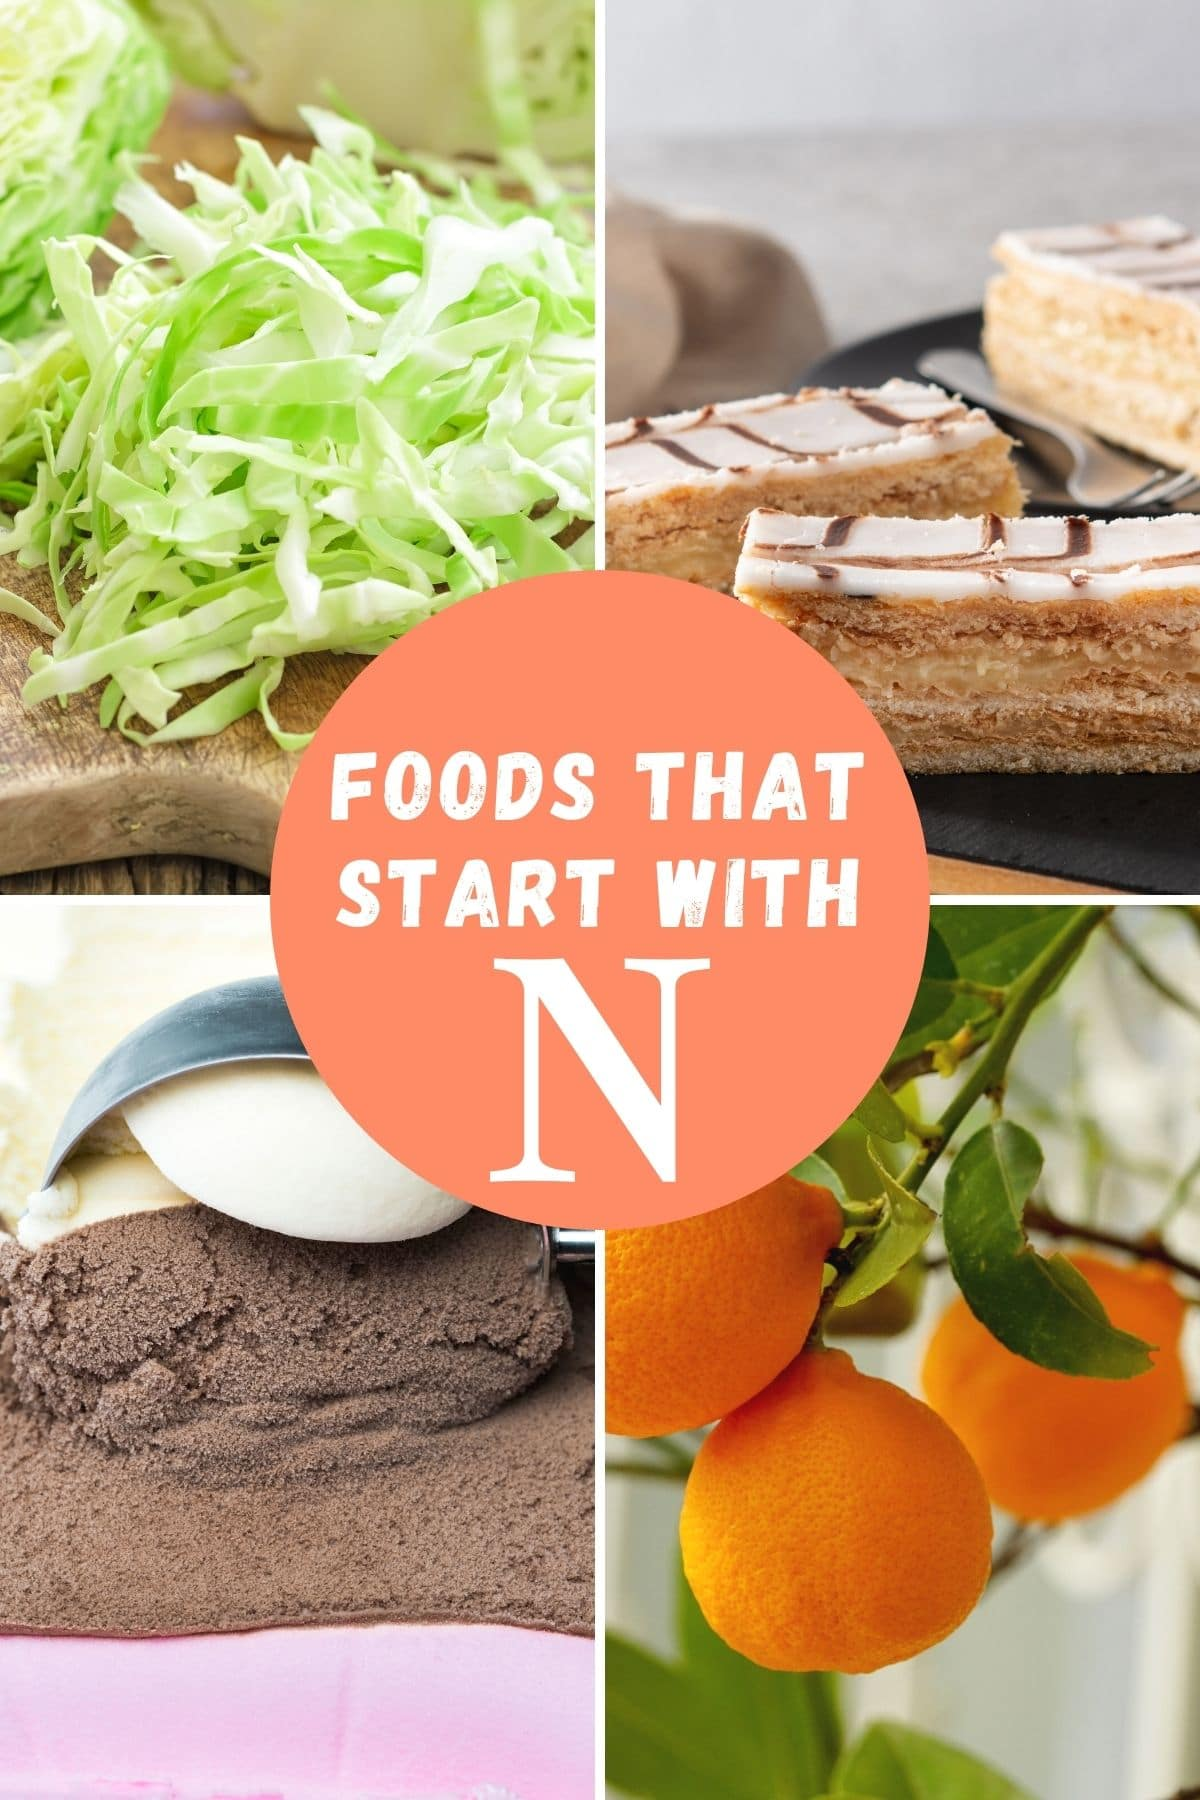 Foods that begin with N